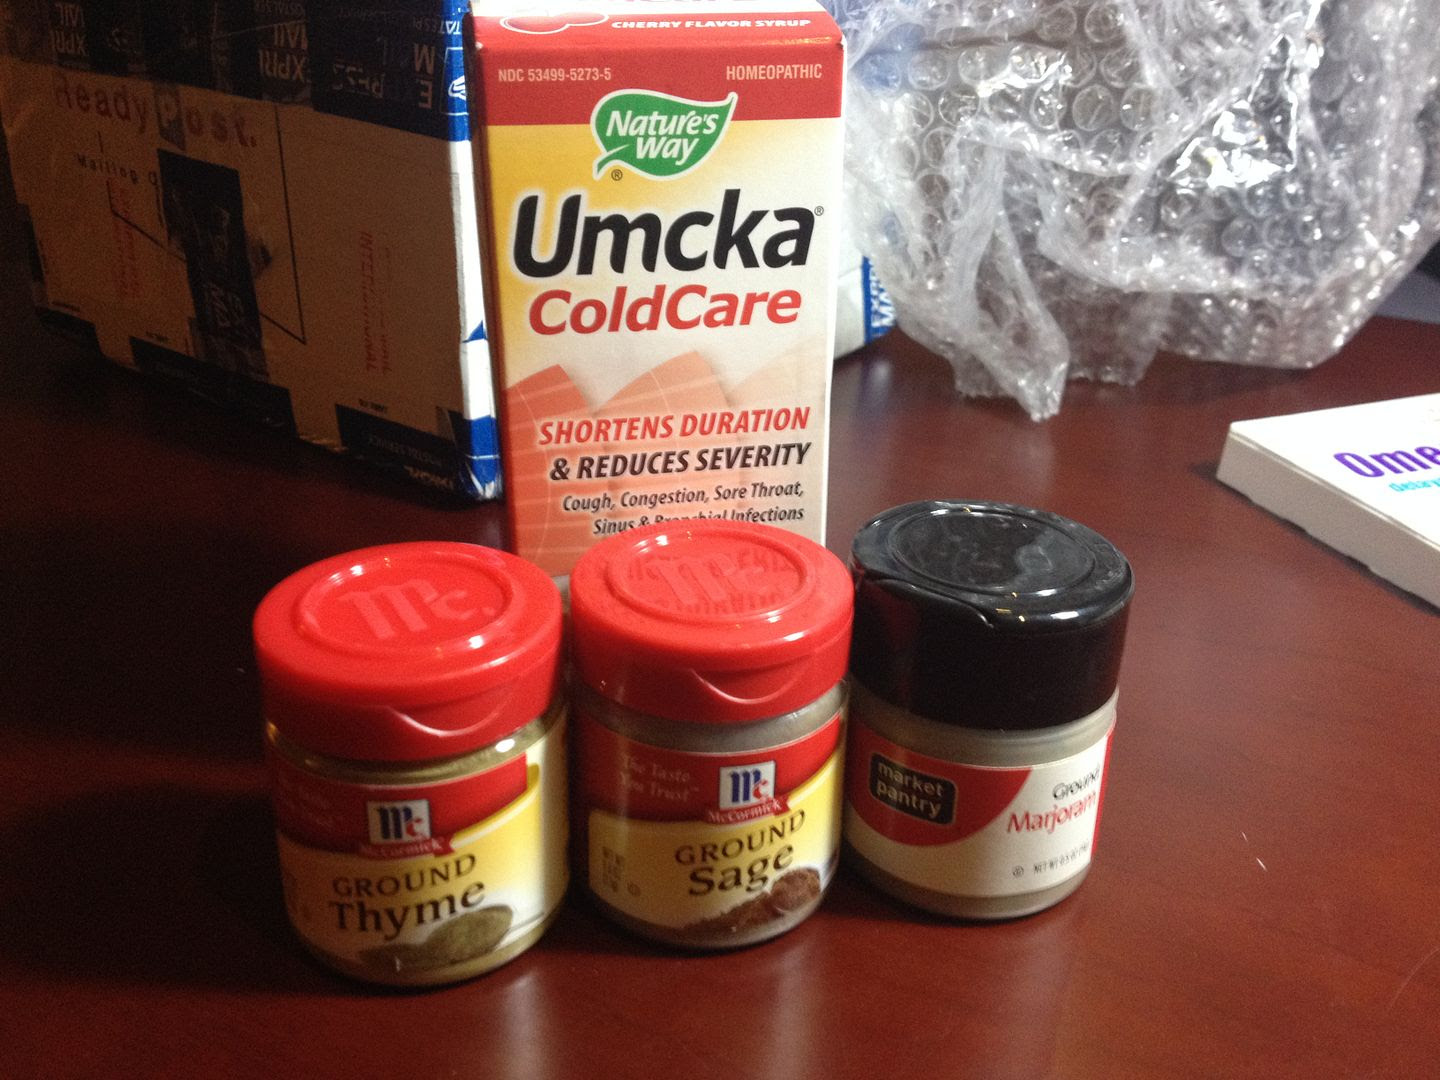 Umcka and Spices for Thanksgiving. Good timing. photo 2013-11-20190518_zpsca4a637f.jpg